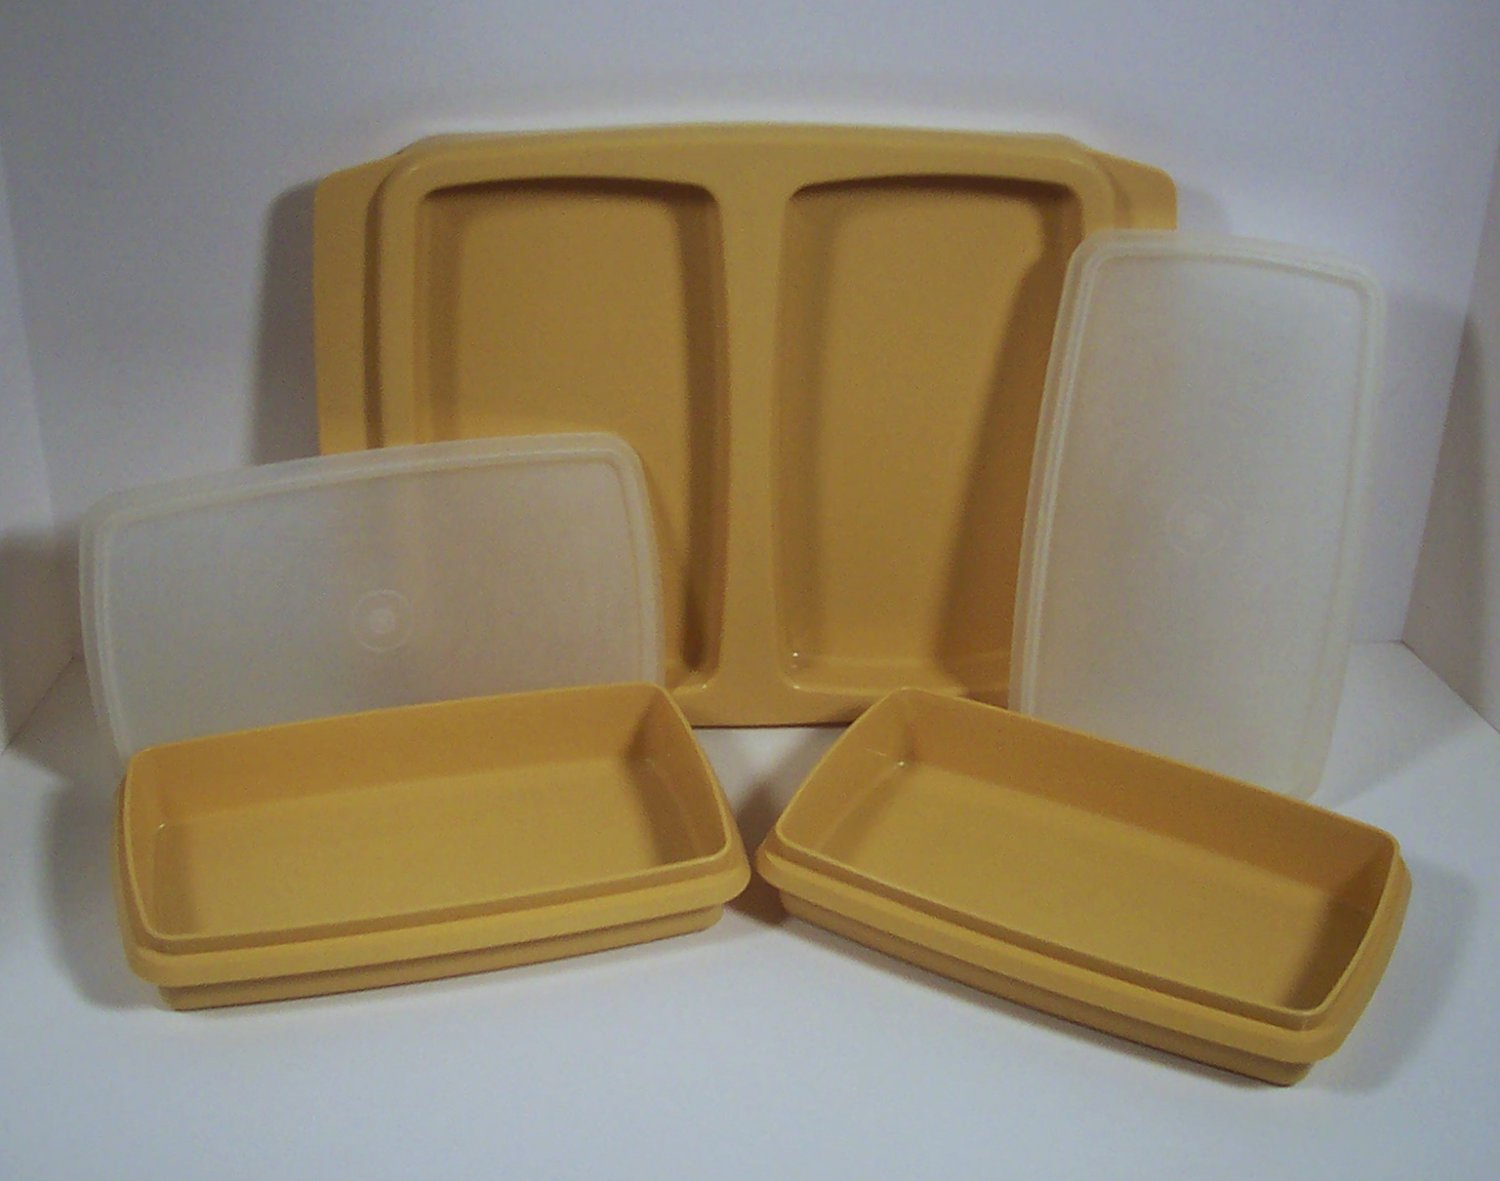 Vintage Tupperware 5 piece Dual Deli Keepers Harvest Gold withTray and Sheer Lids